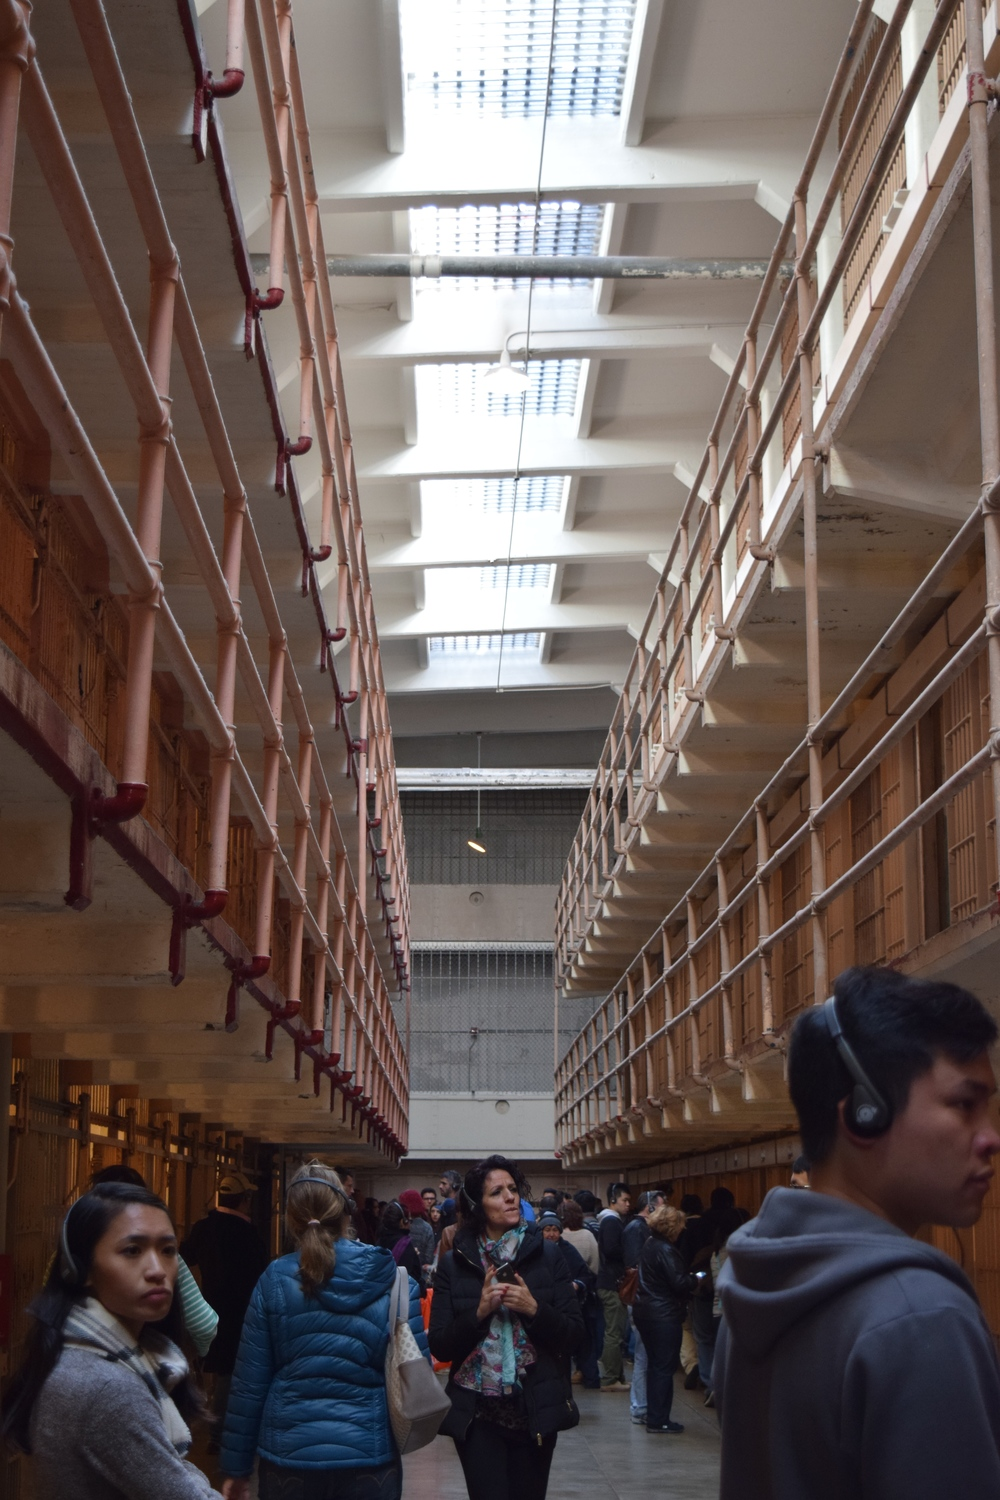 Each row of cells were 3 stories tall